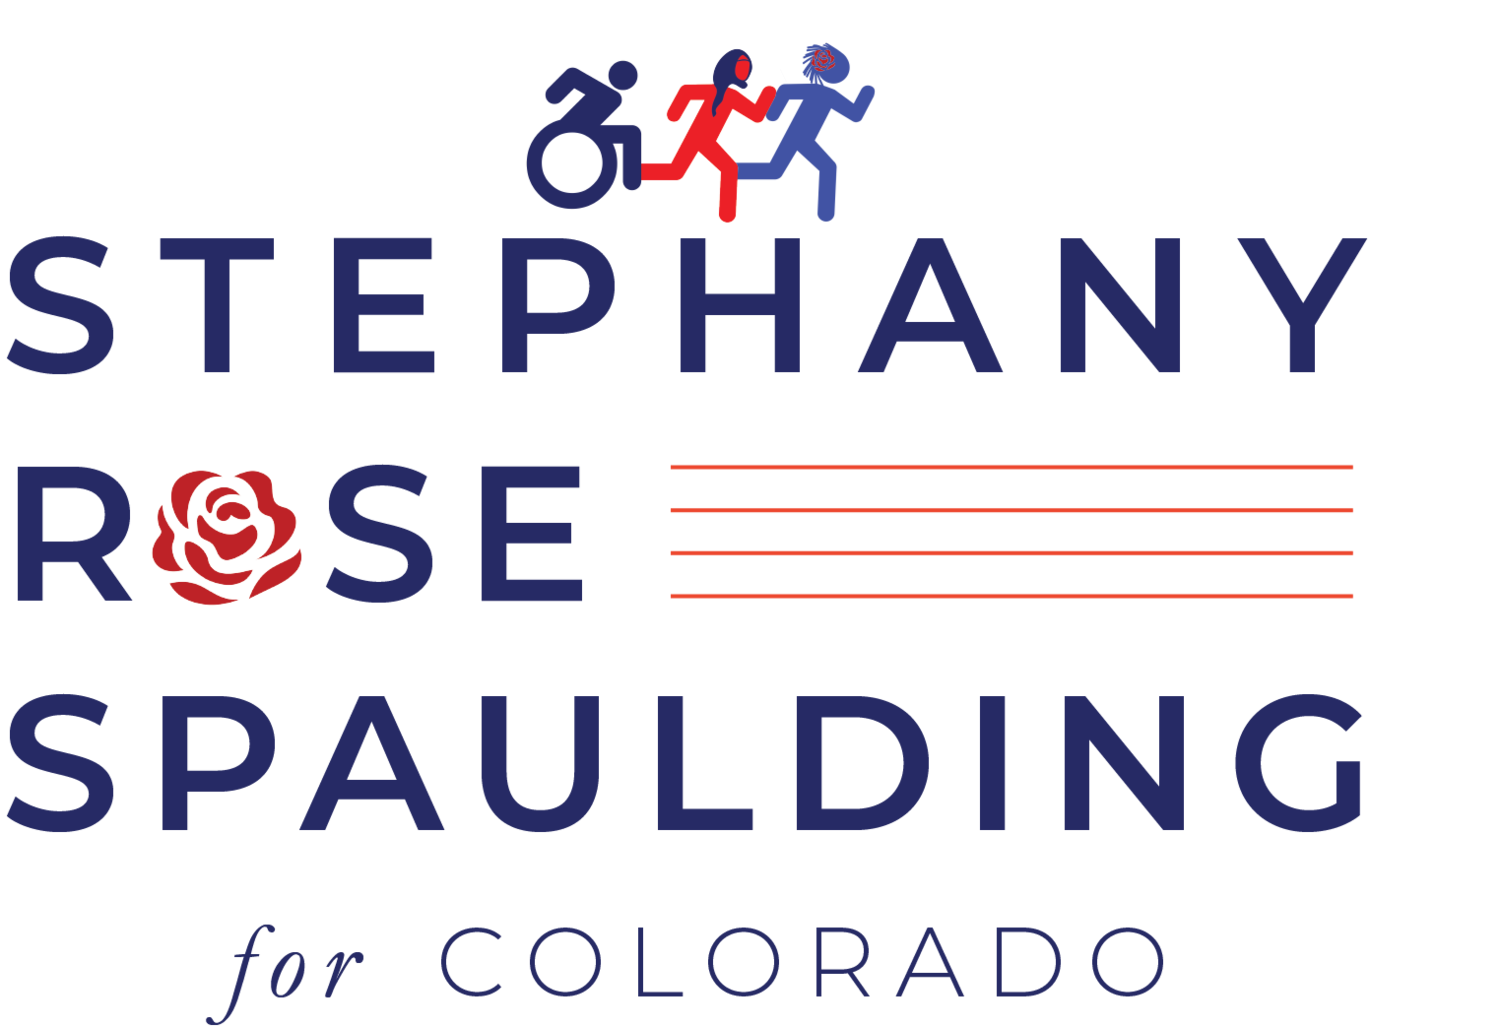 Stephany Rose Spaulding for Senate